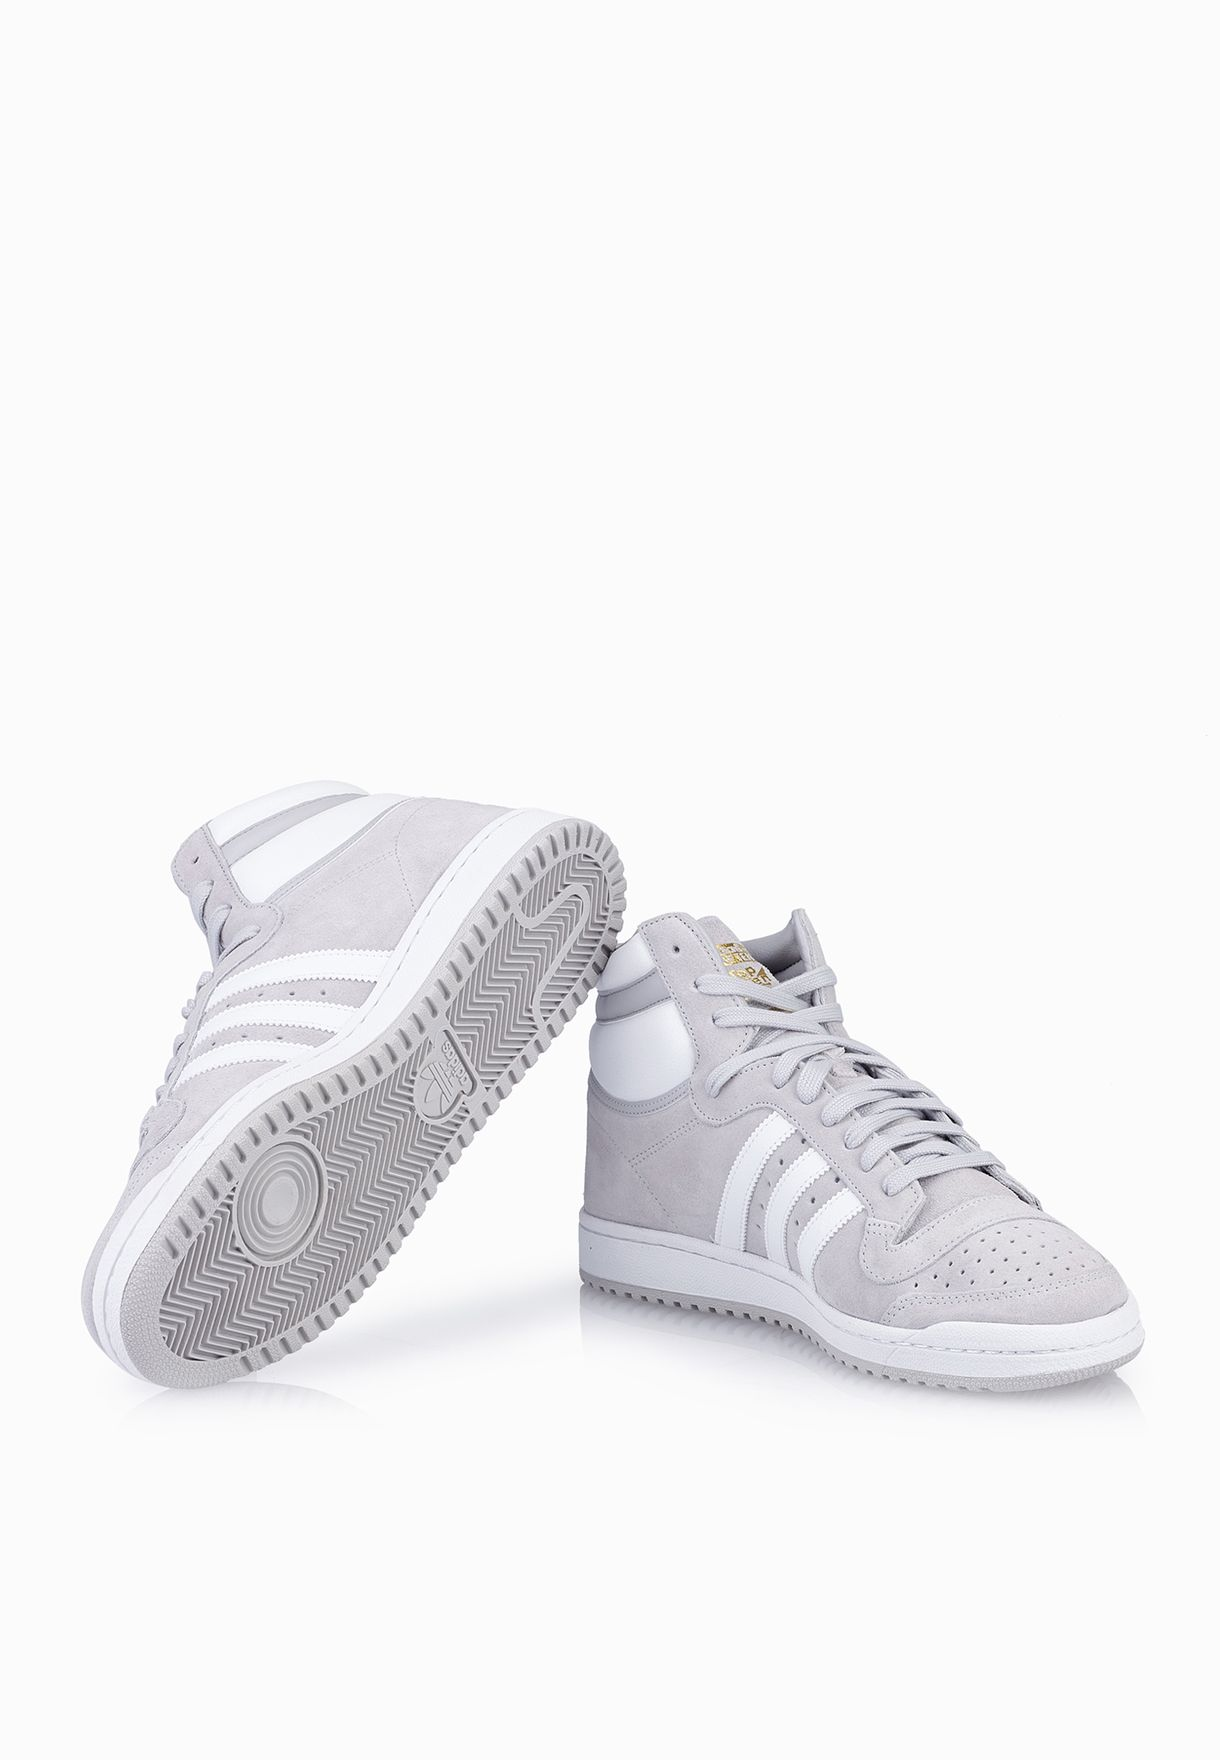 hot sale online 496b4 c4a65 adidas Originals. Top Ten HI